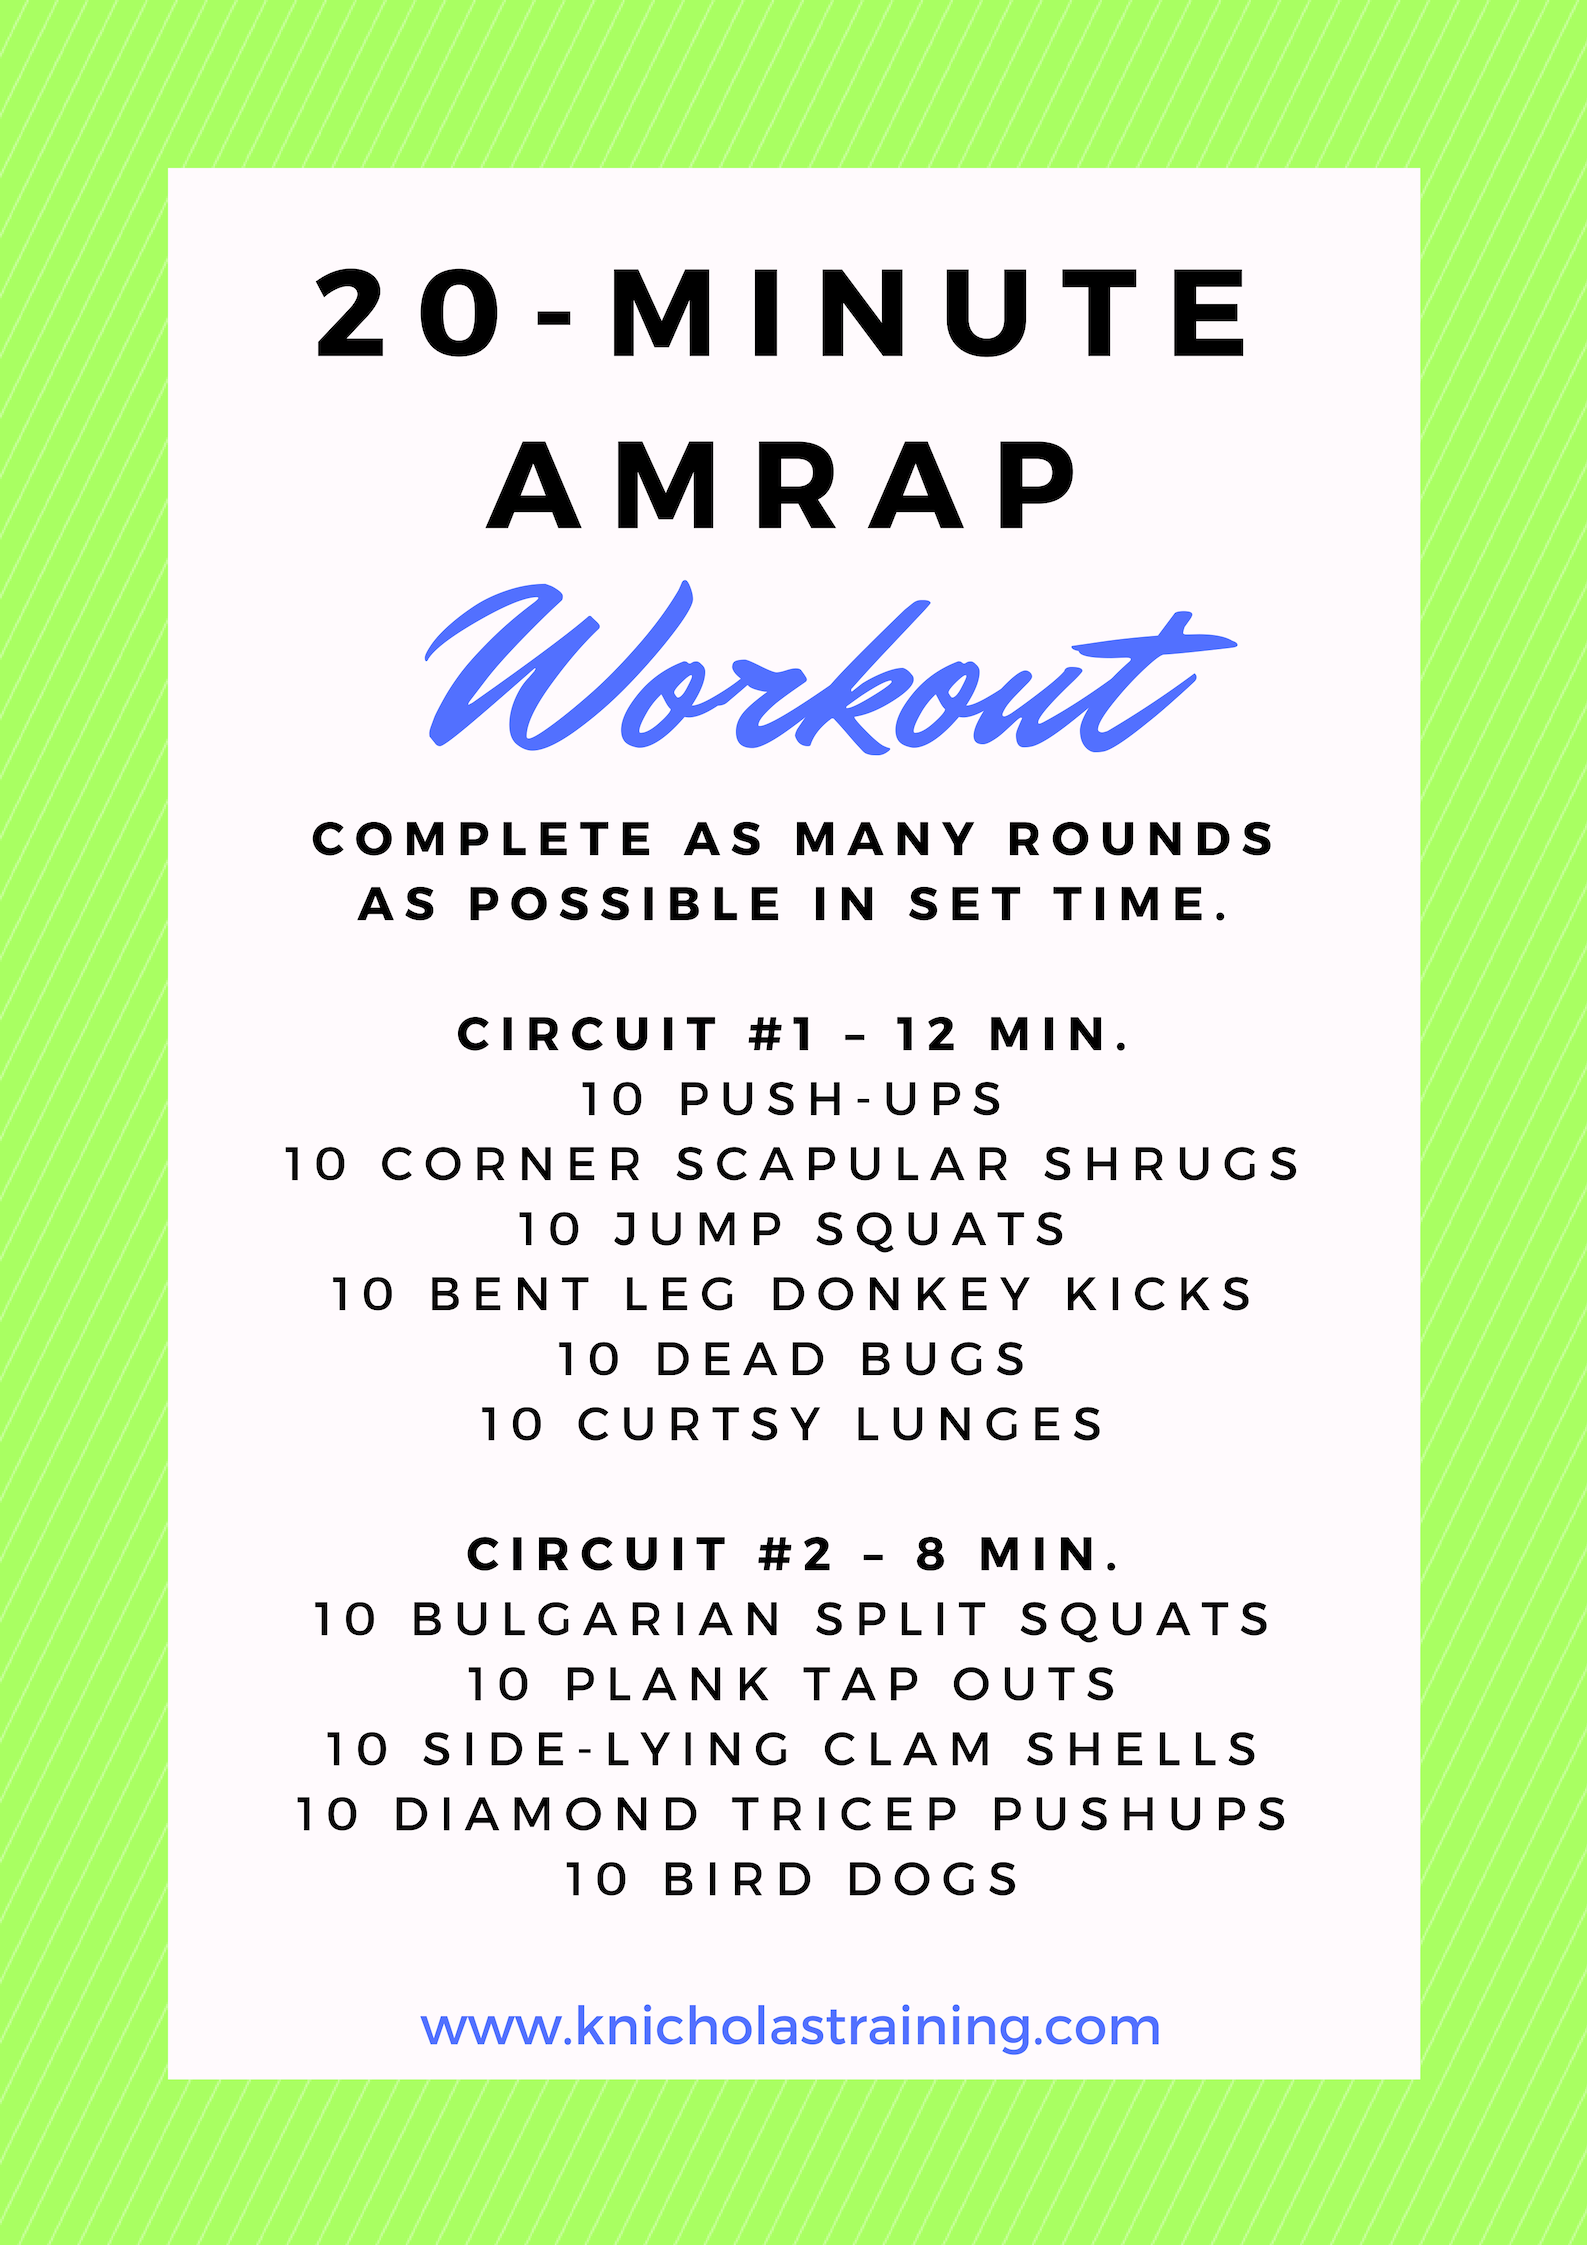 20-Minute AMRAP Workout.png